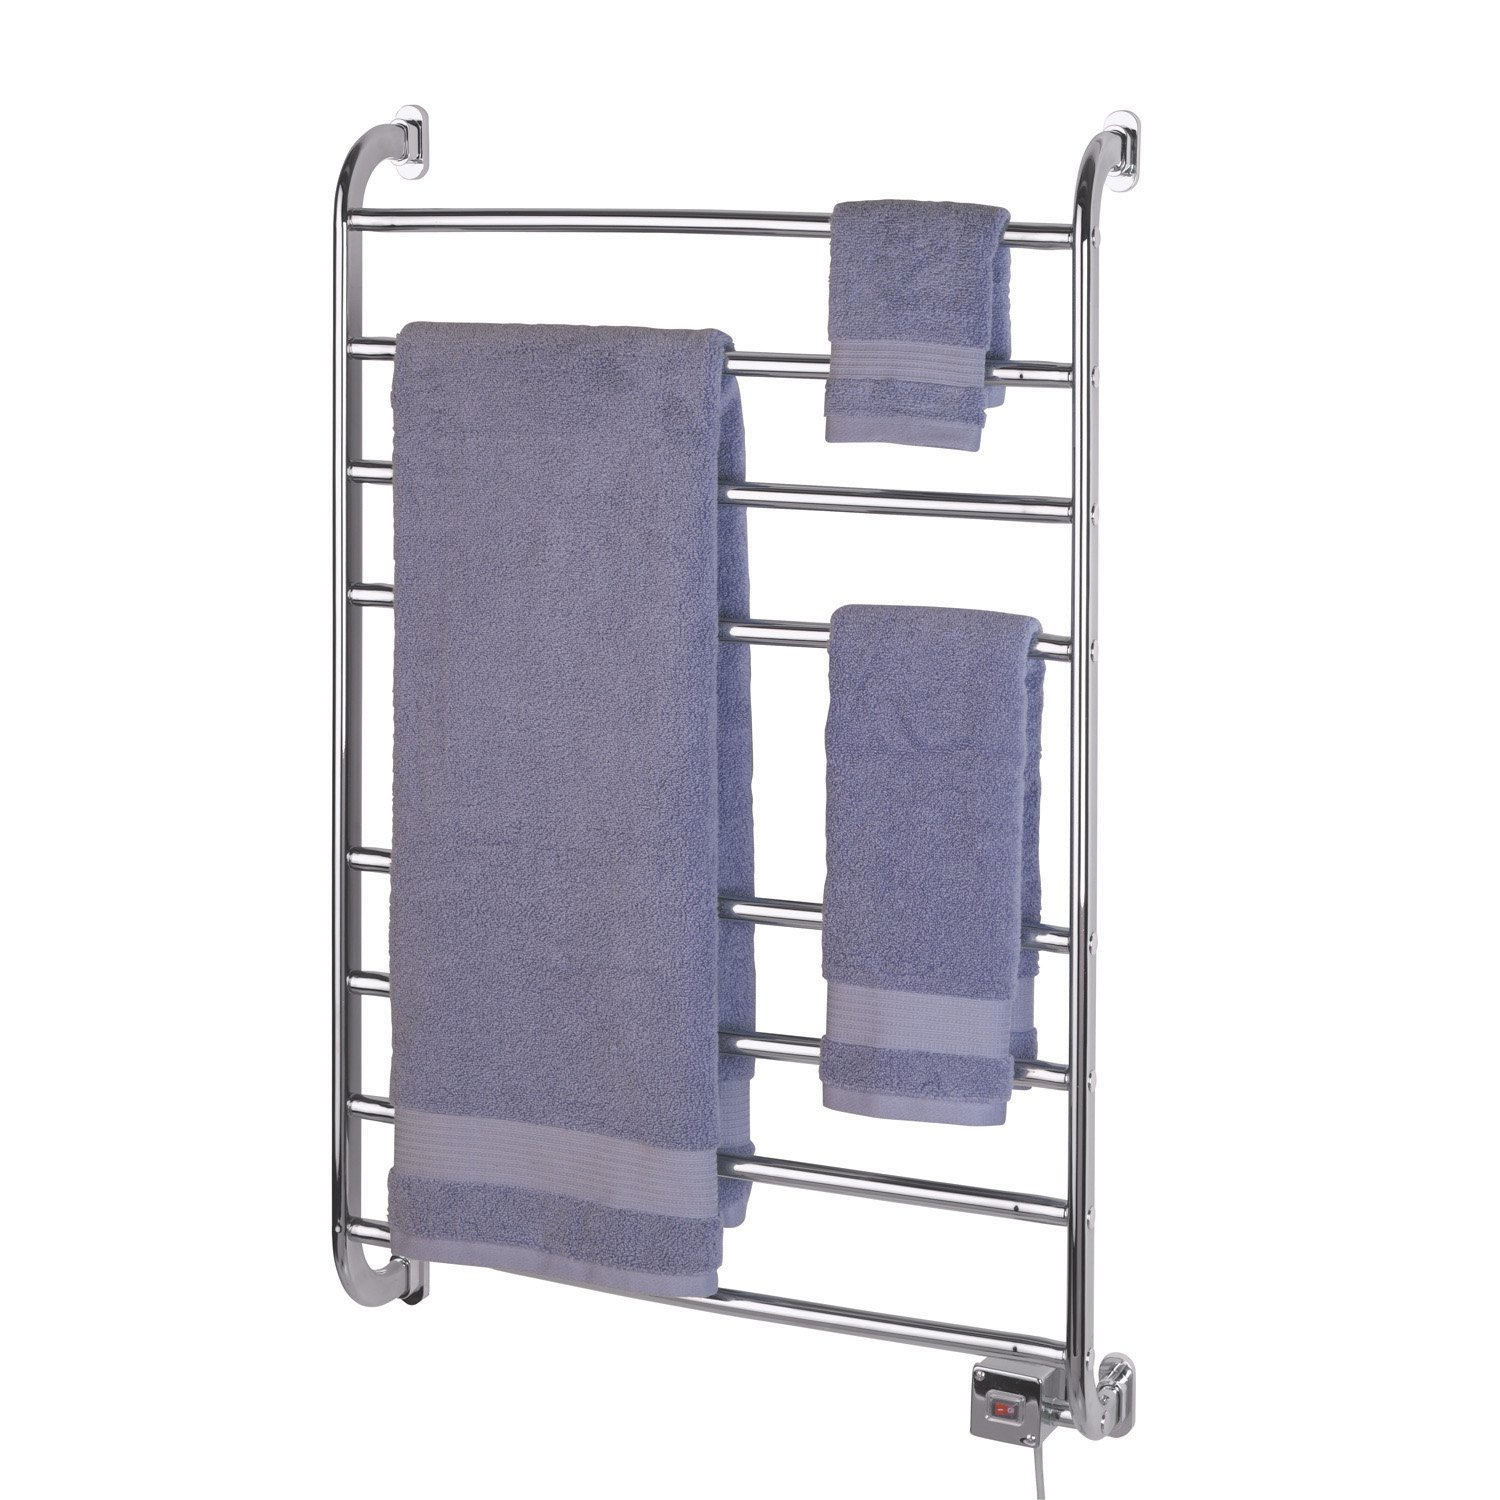 Amazoncom Warmrails HWSW Kensington Wall Mounted Towel Warmer